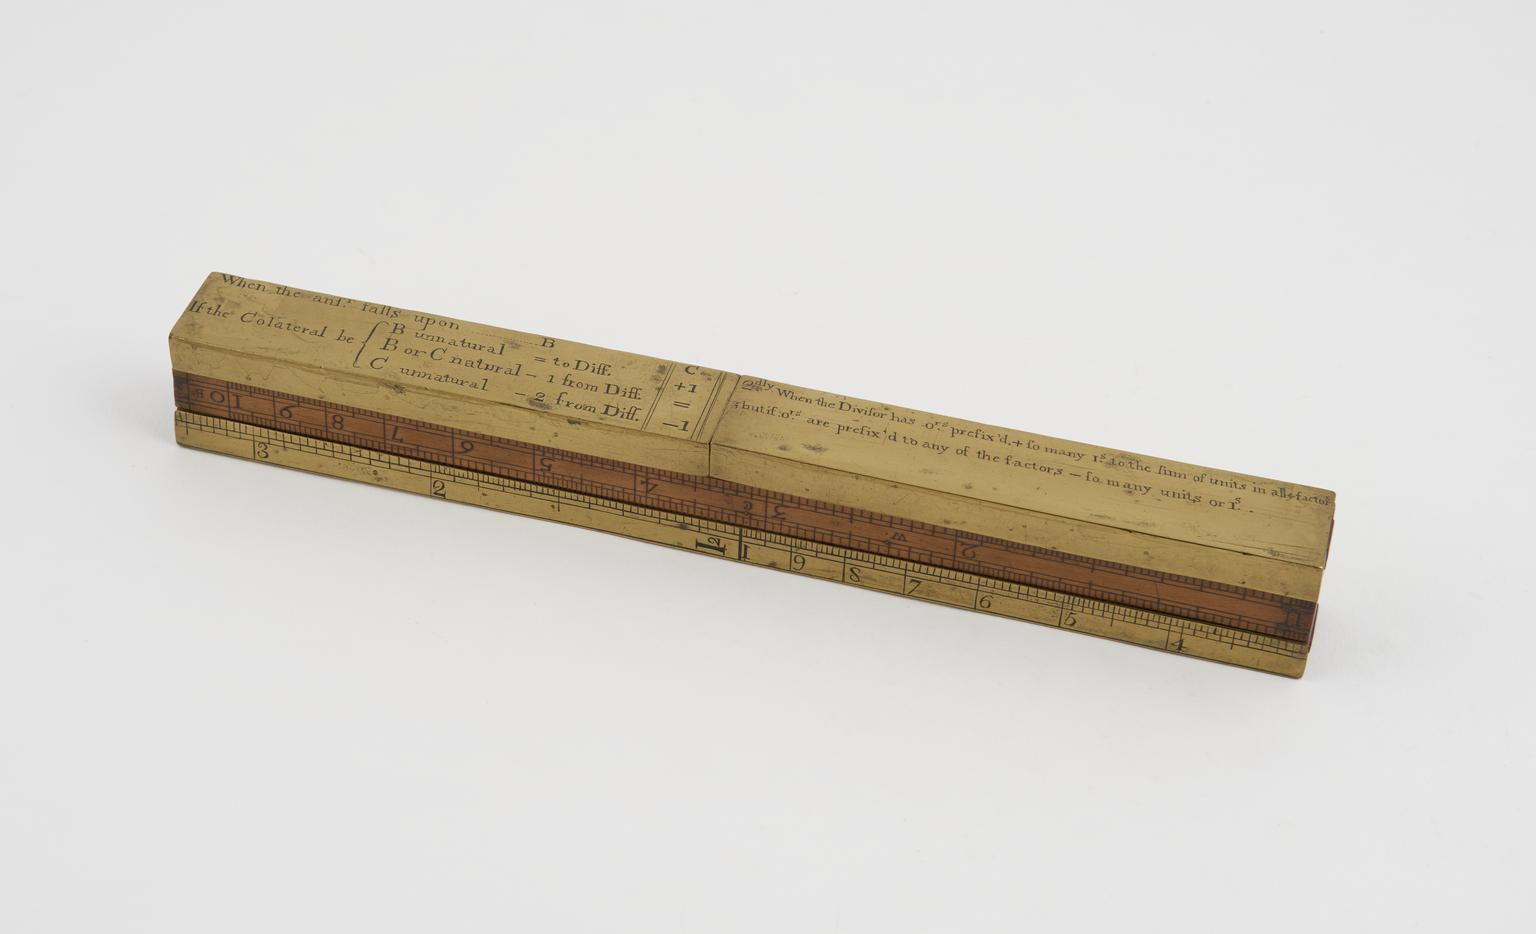 https://collection.sciencemuseumgroup.org.uk/objects/co60489/ullage-slide-rule-1759-1776-slide-rules-excise-slide-rules-ullage